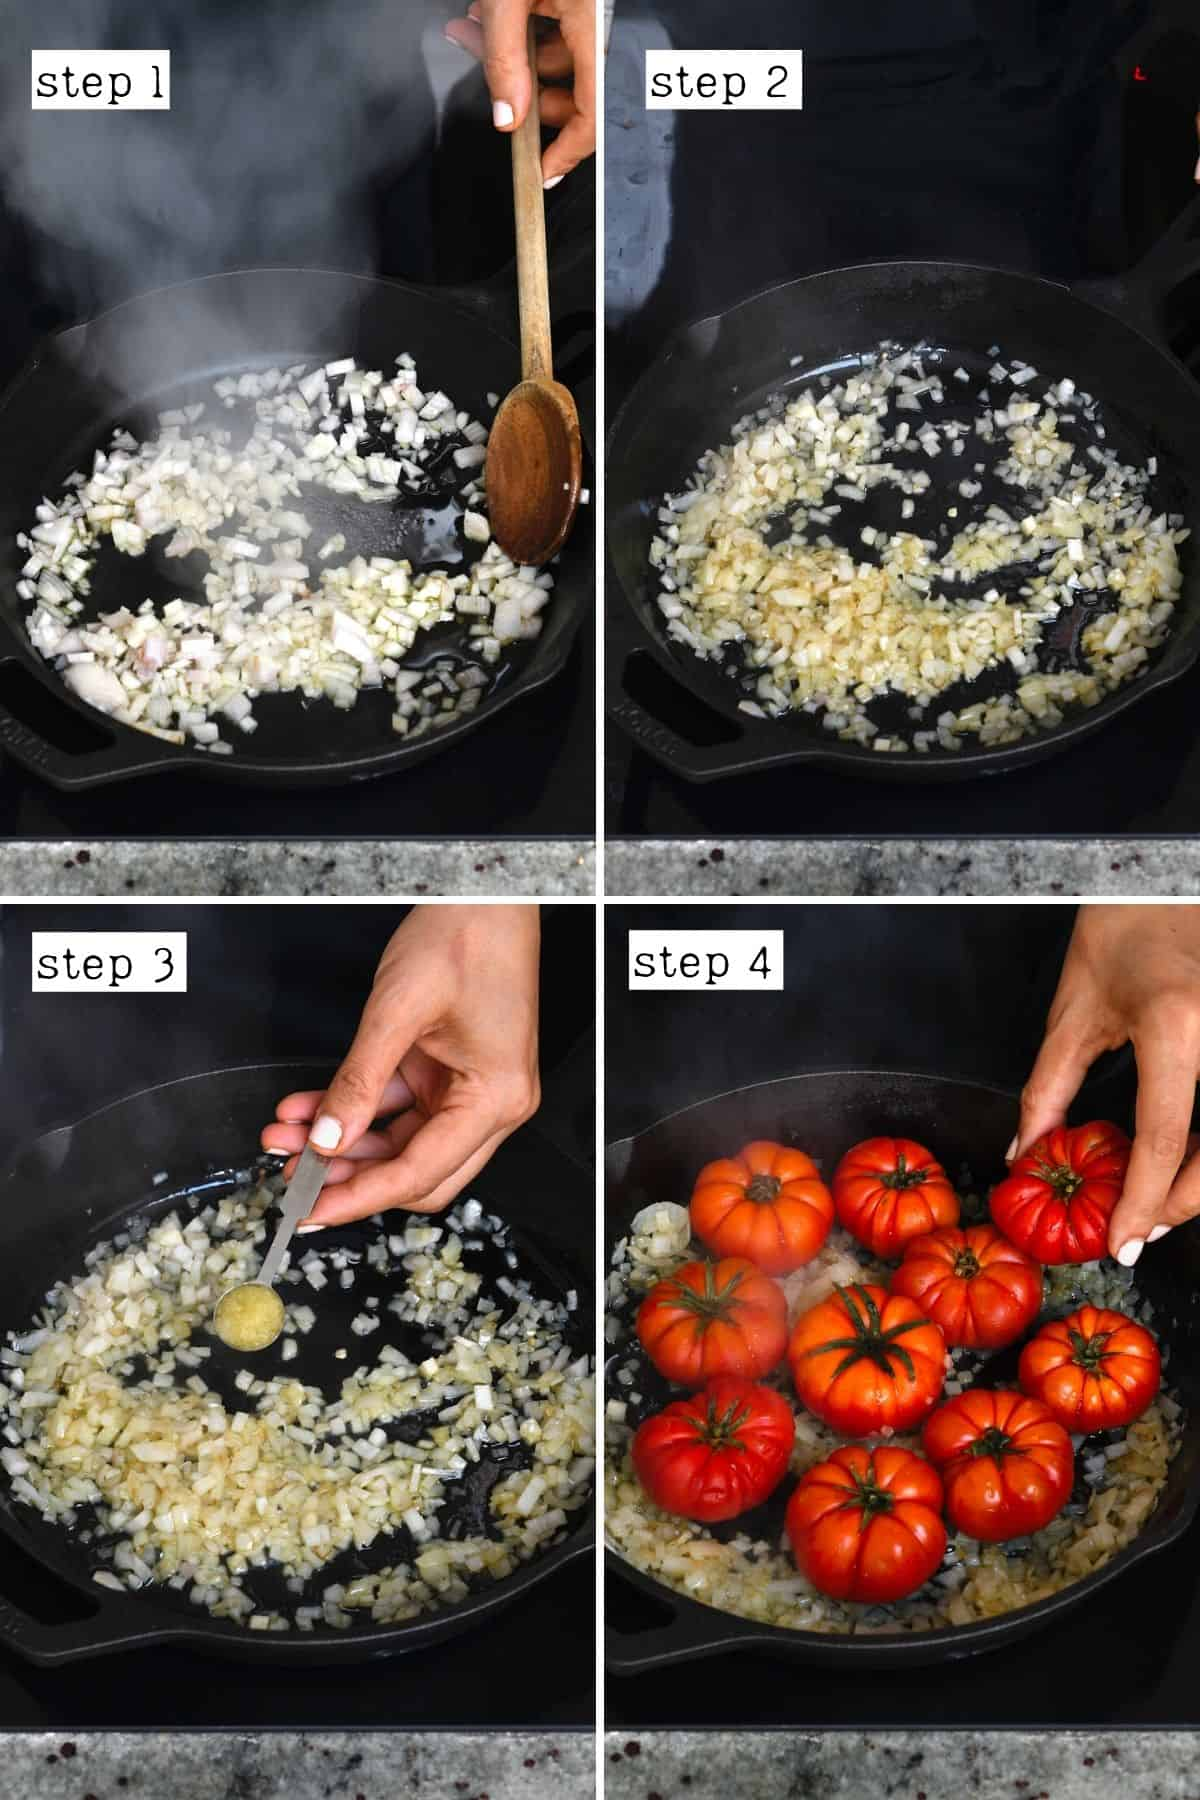 Steps for cooking onion garlic and tomatoes